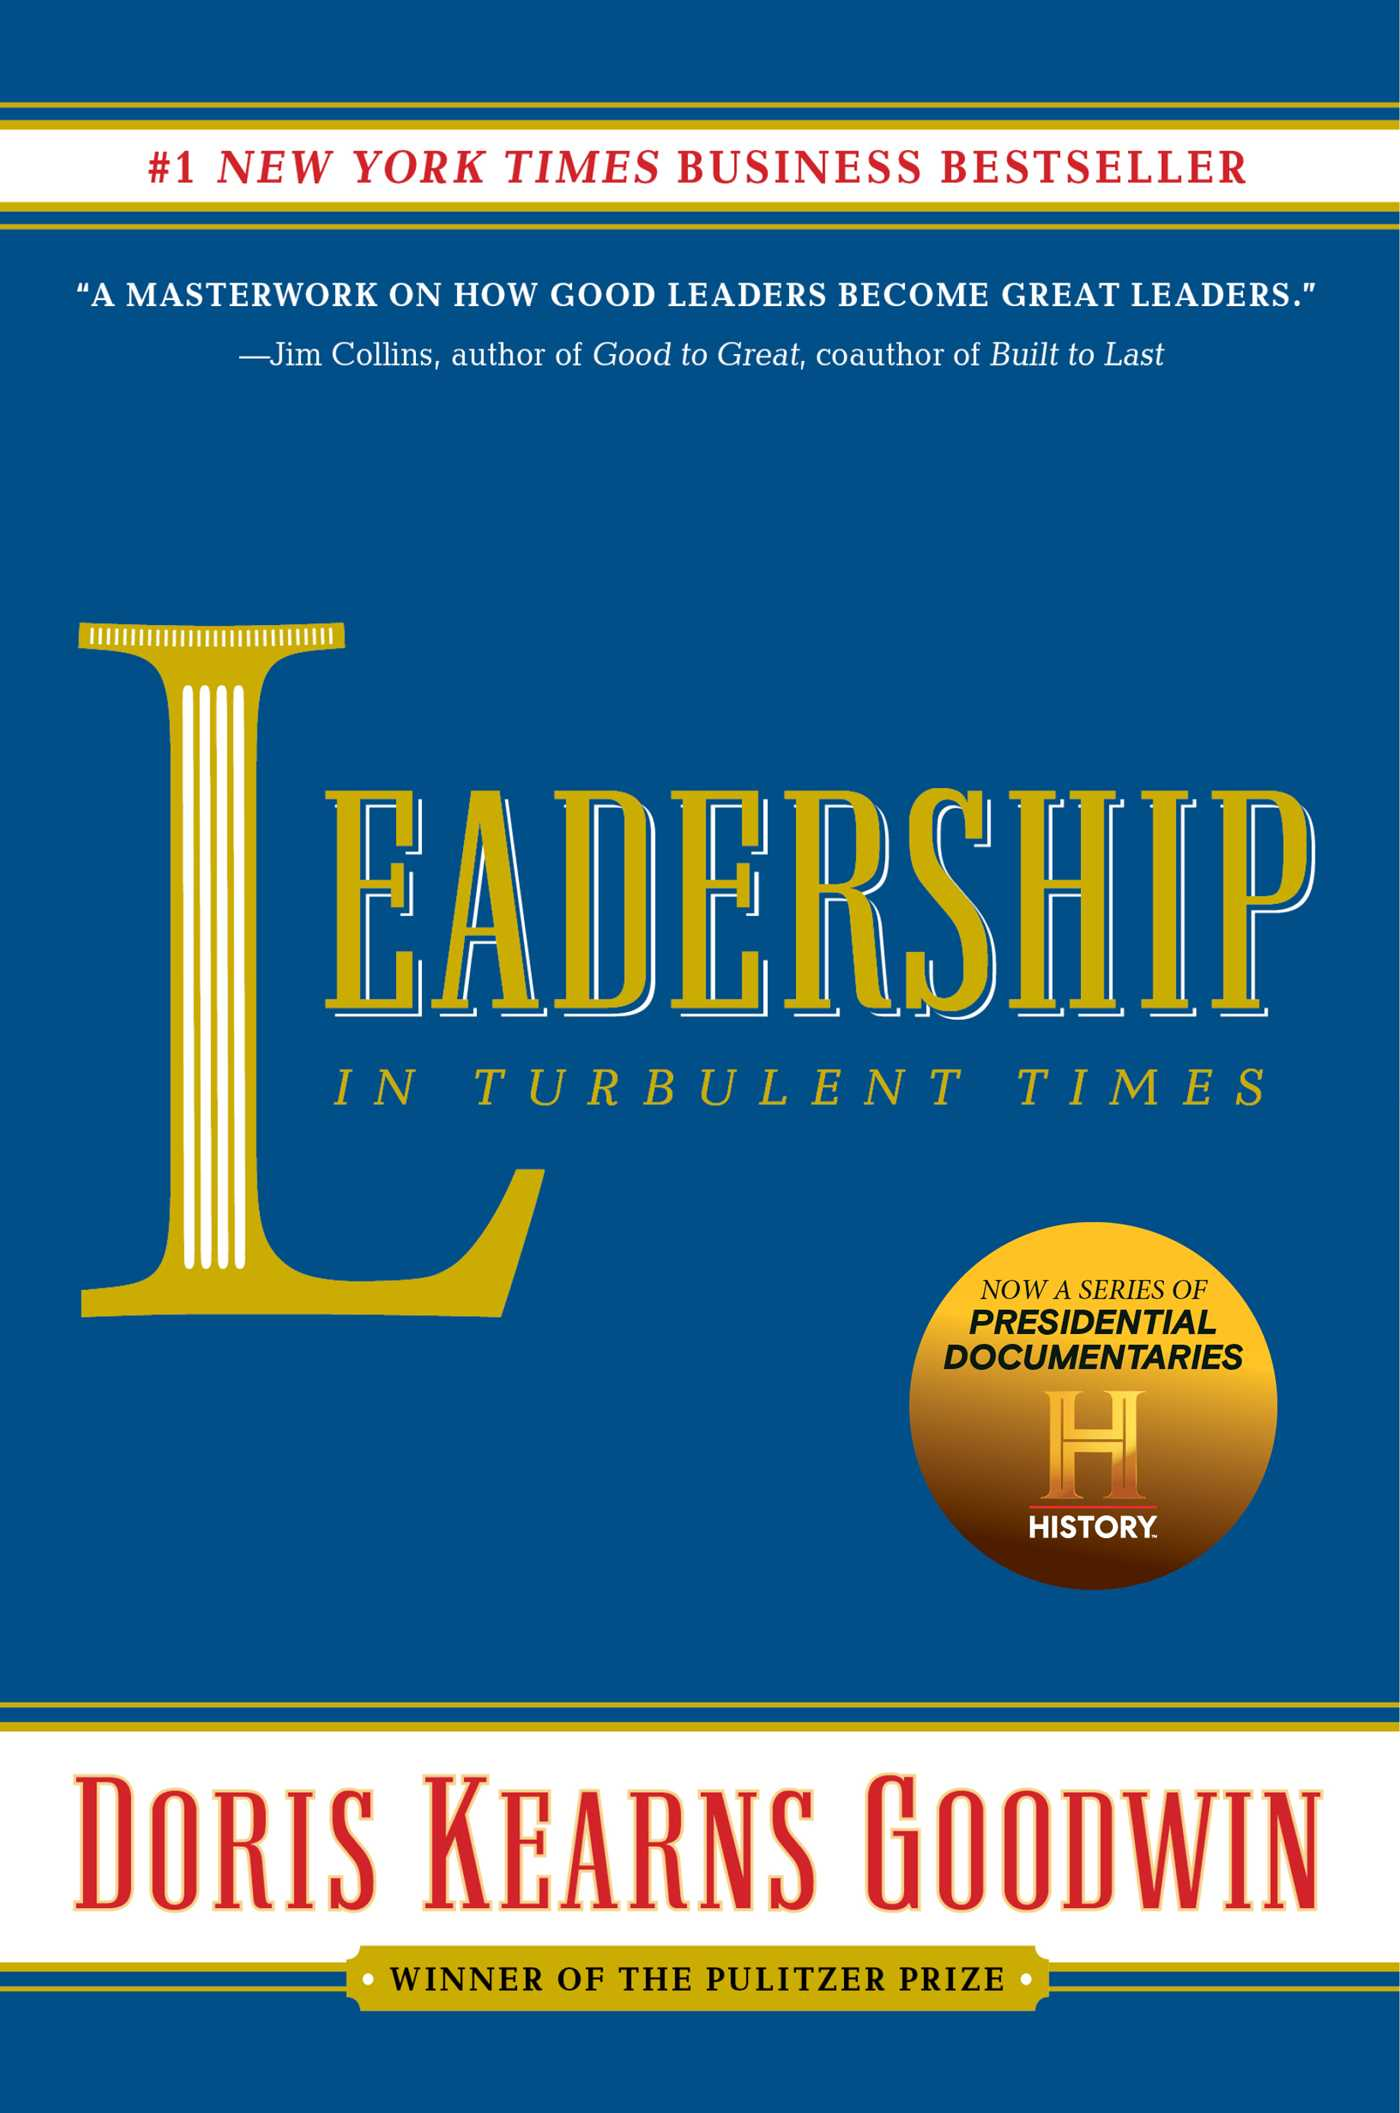 Leadership [electronic resource] : In Turbulent Times